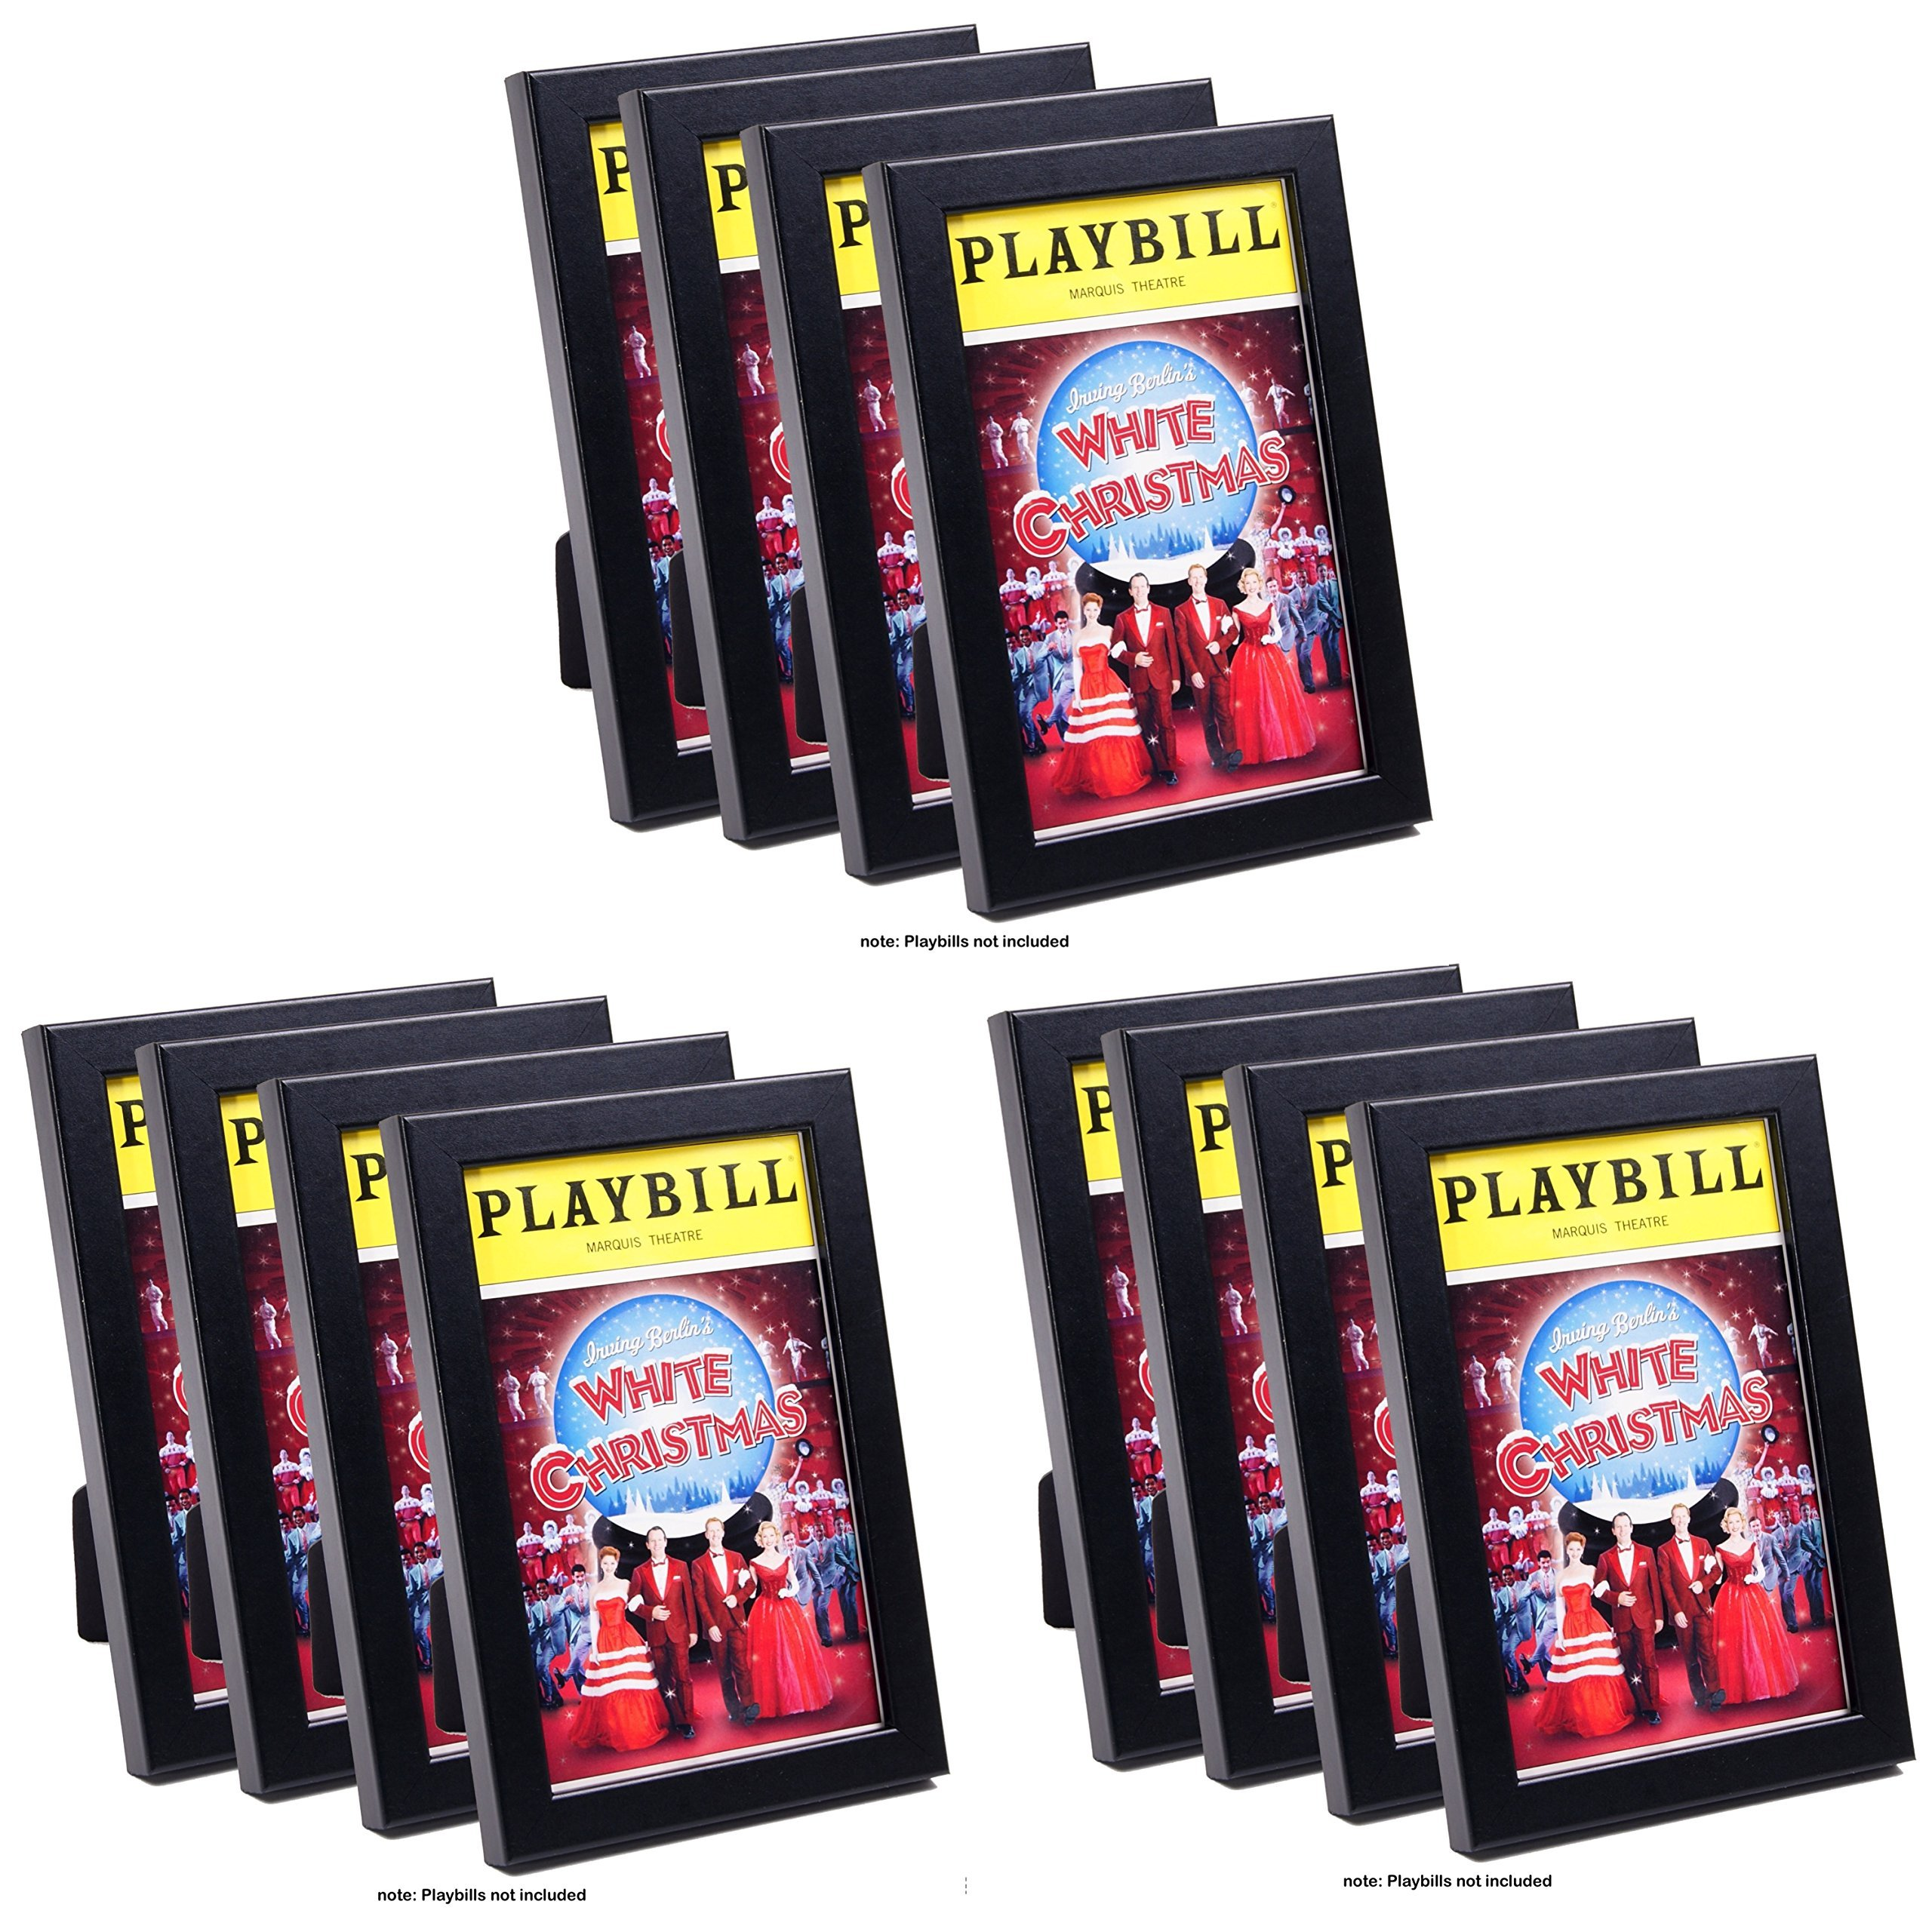 CreativePF [12pk5.5x8.5bk] Black Theatre Playbill Frame - Displays 8.5 by 5.5 inch Media Collection, Easel Stand and Wall Hanger Included (12- Pack) by Creative Picture Frames